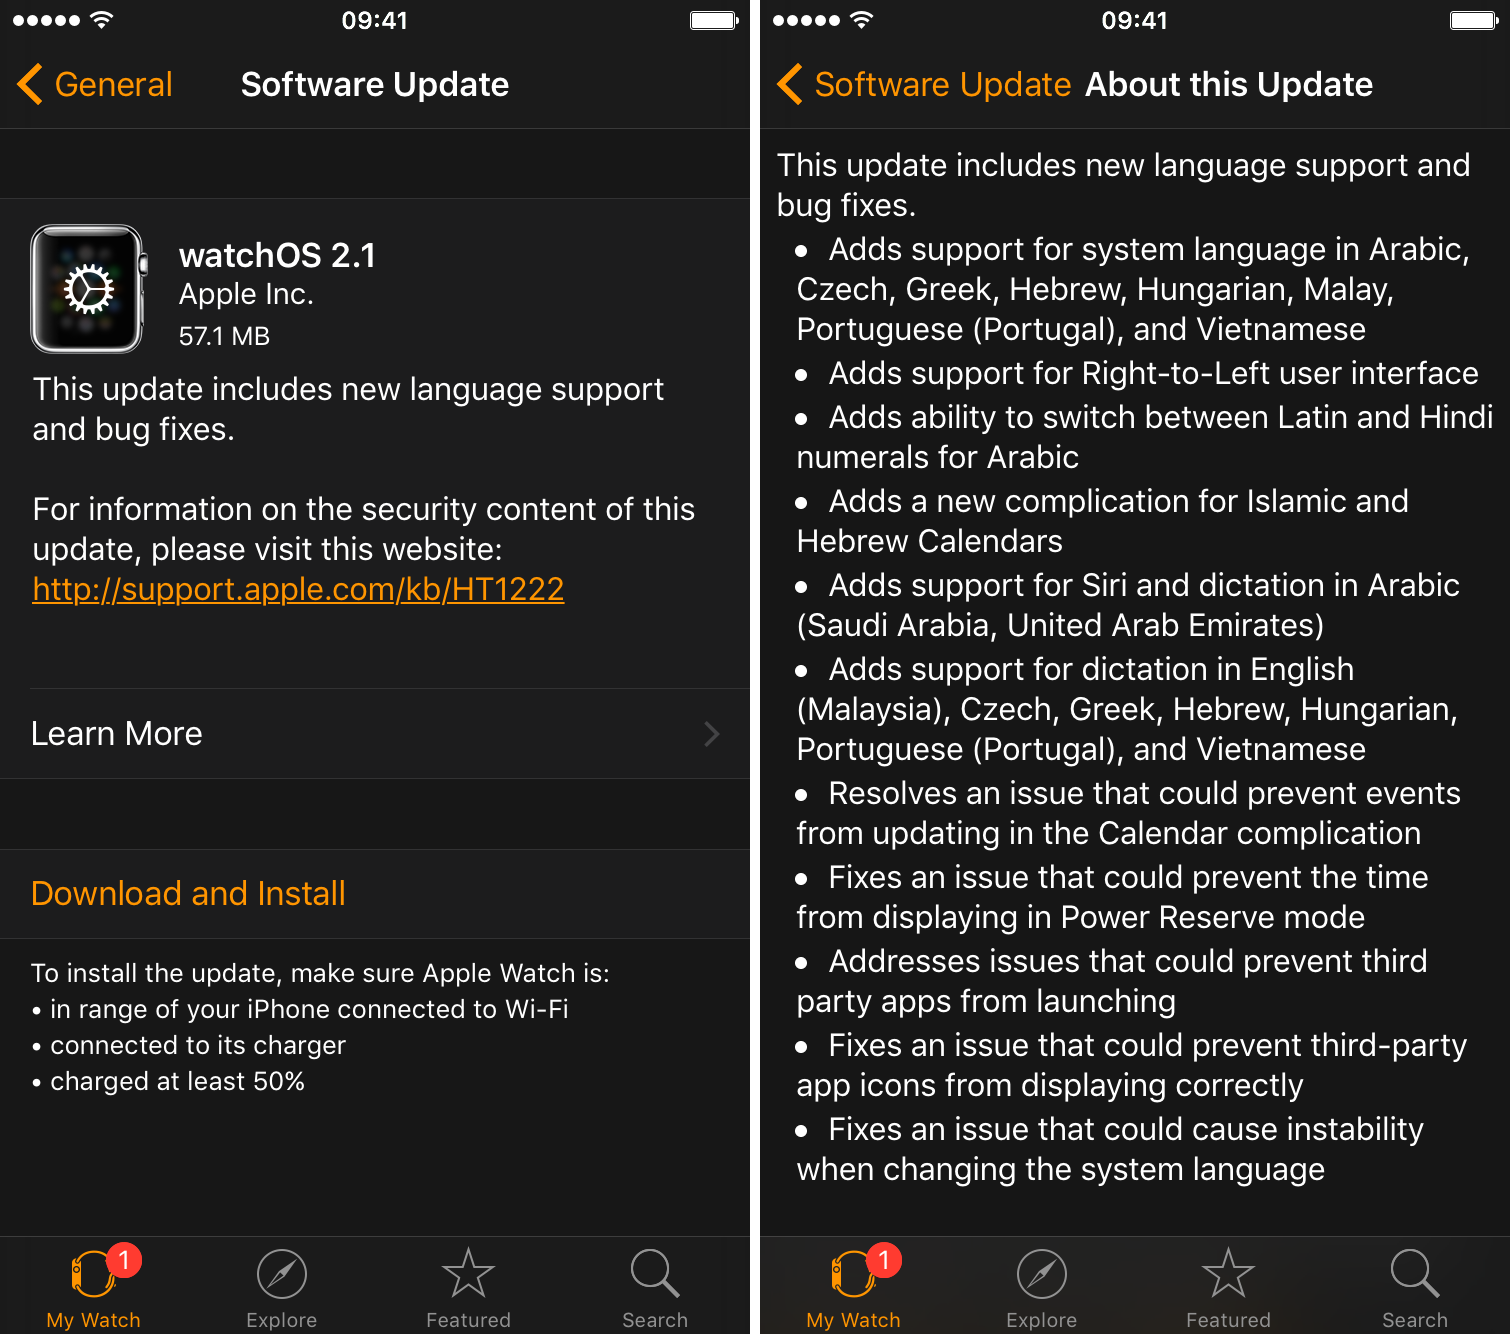 watchOS-2.1-updated-porompt